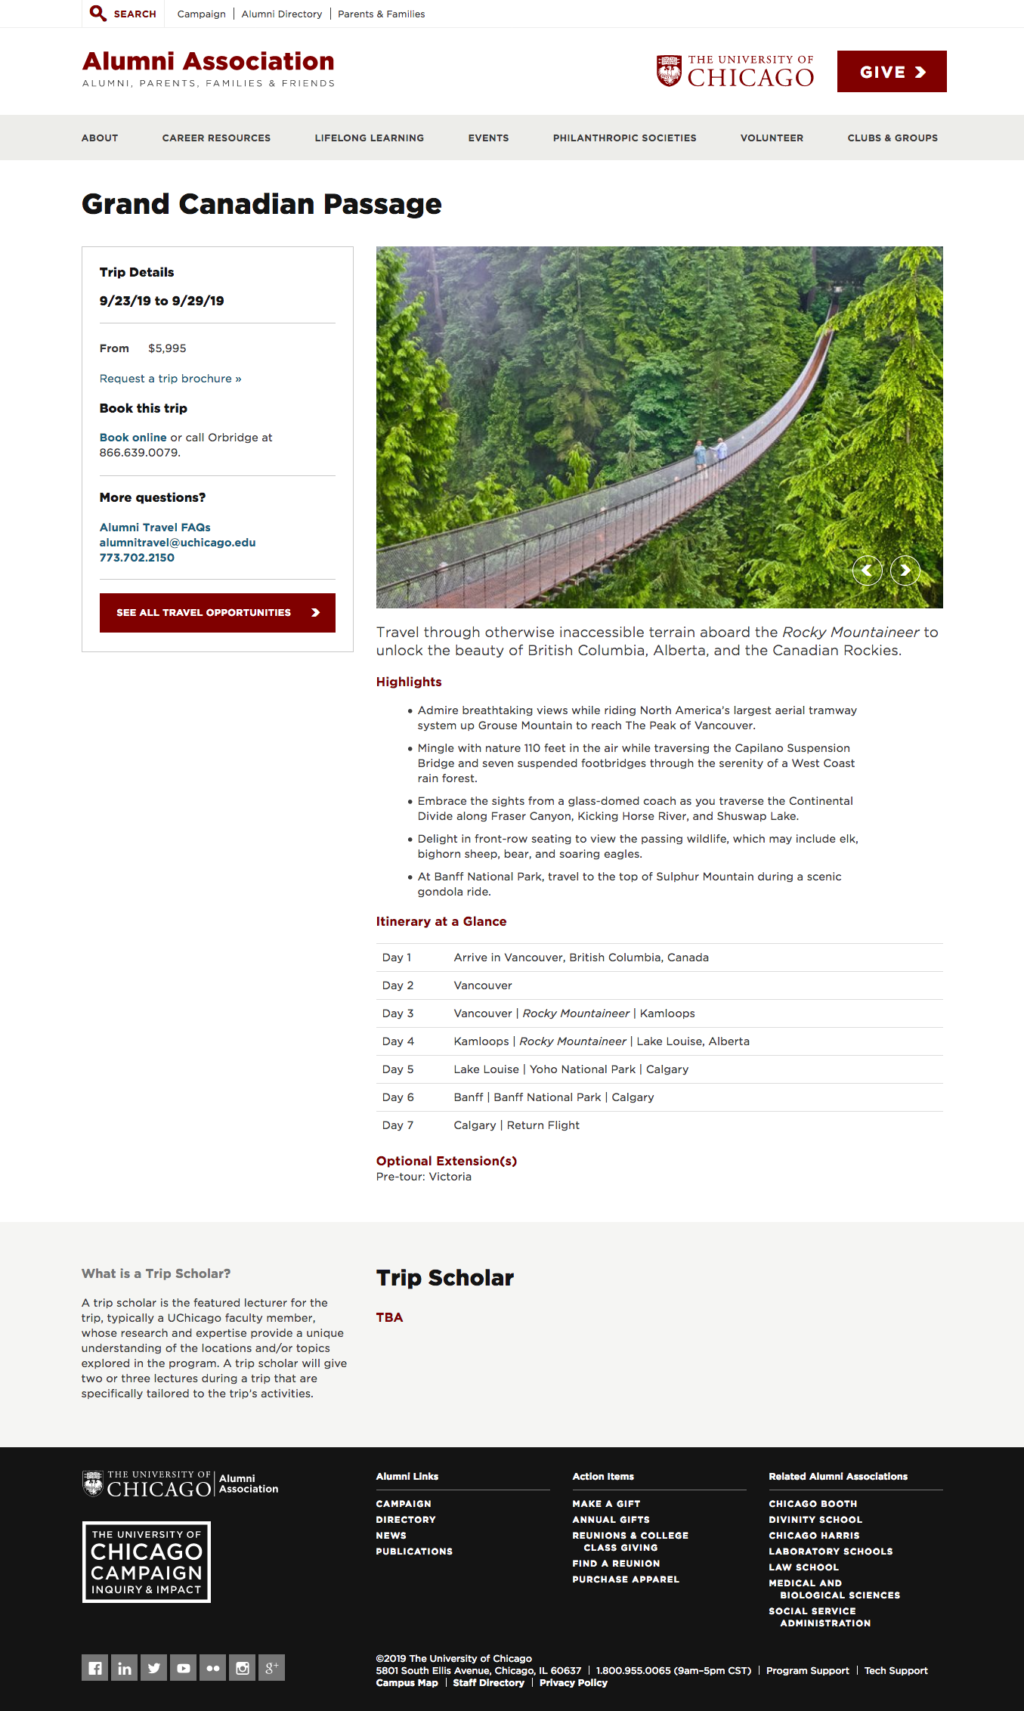 Alumni travel web page, built in Drupal with given content